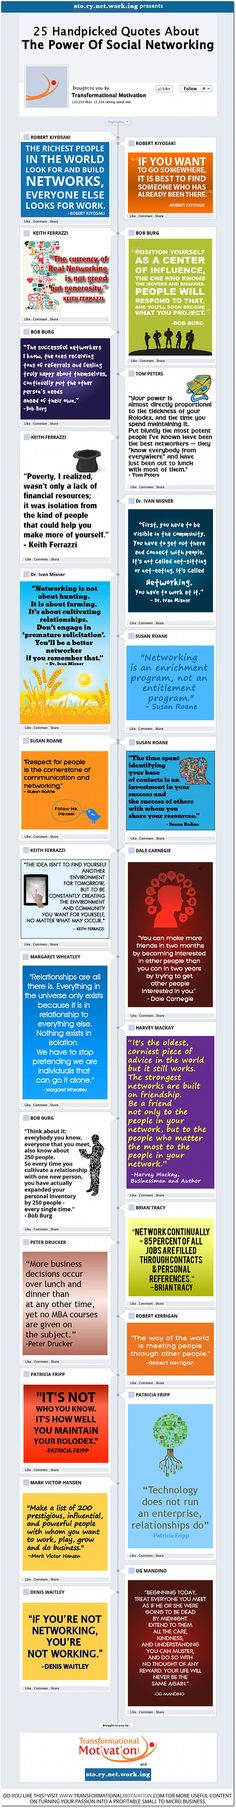 25 #quotes about the power of social networking